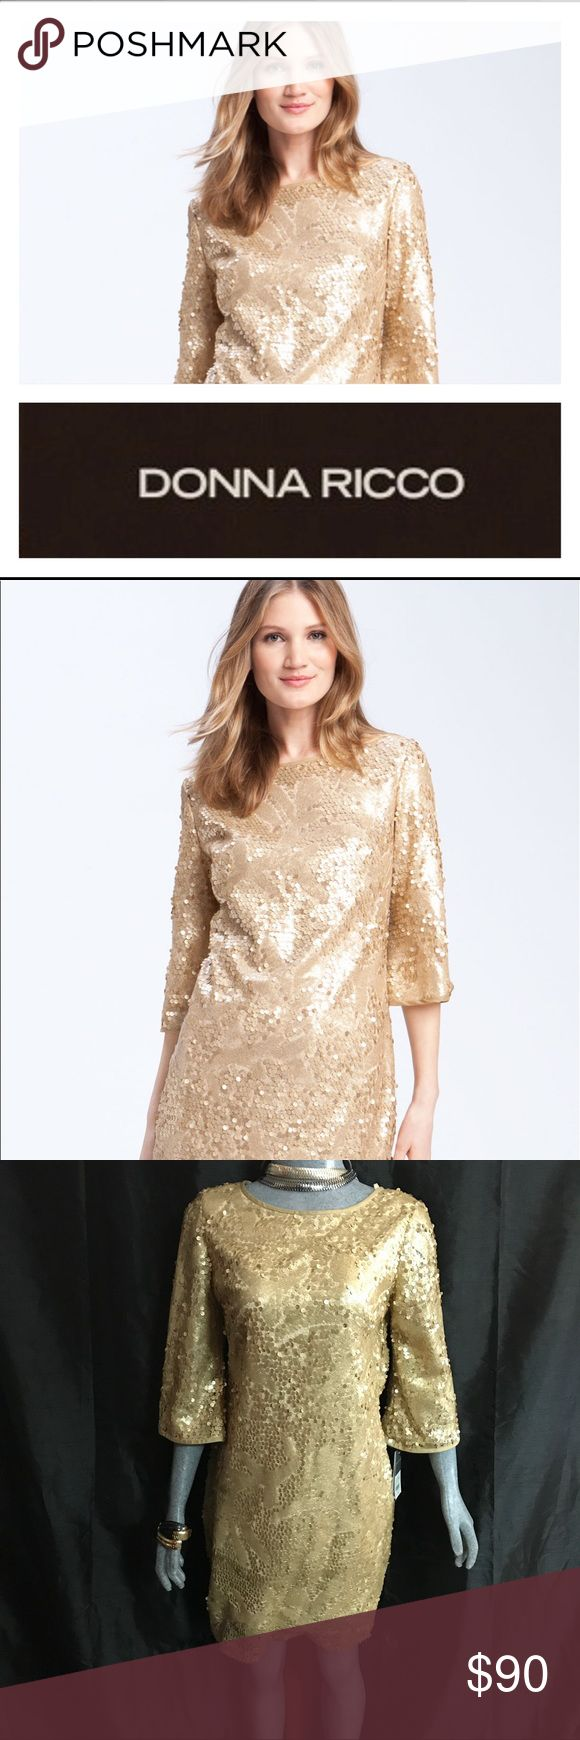 ❤️👠 New DONNA RICCO SEQUIN GOLD DRESS 👠❤️ ❤️Selling a Gorgeous Top of the Line Gold Donna Ricco Sequin Dress❤️ Bought for $158 at Nordstrom ❤️ This is a Top Dollar Dress .. Mrs Obama..wore plenty  Ricco Dresses ❤️ Looks flawless ❤️ Worth Every Penny ❤️ Donna Ricco Dresses